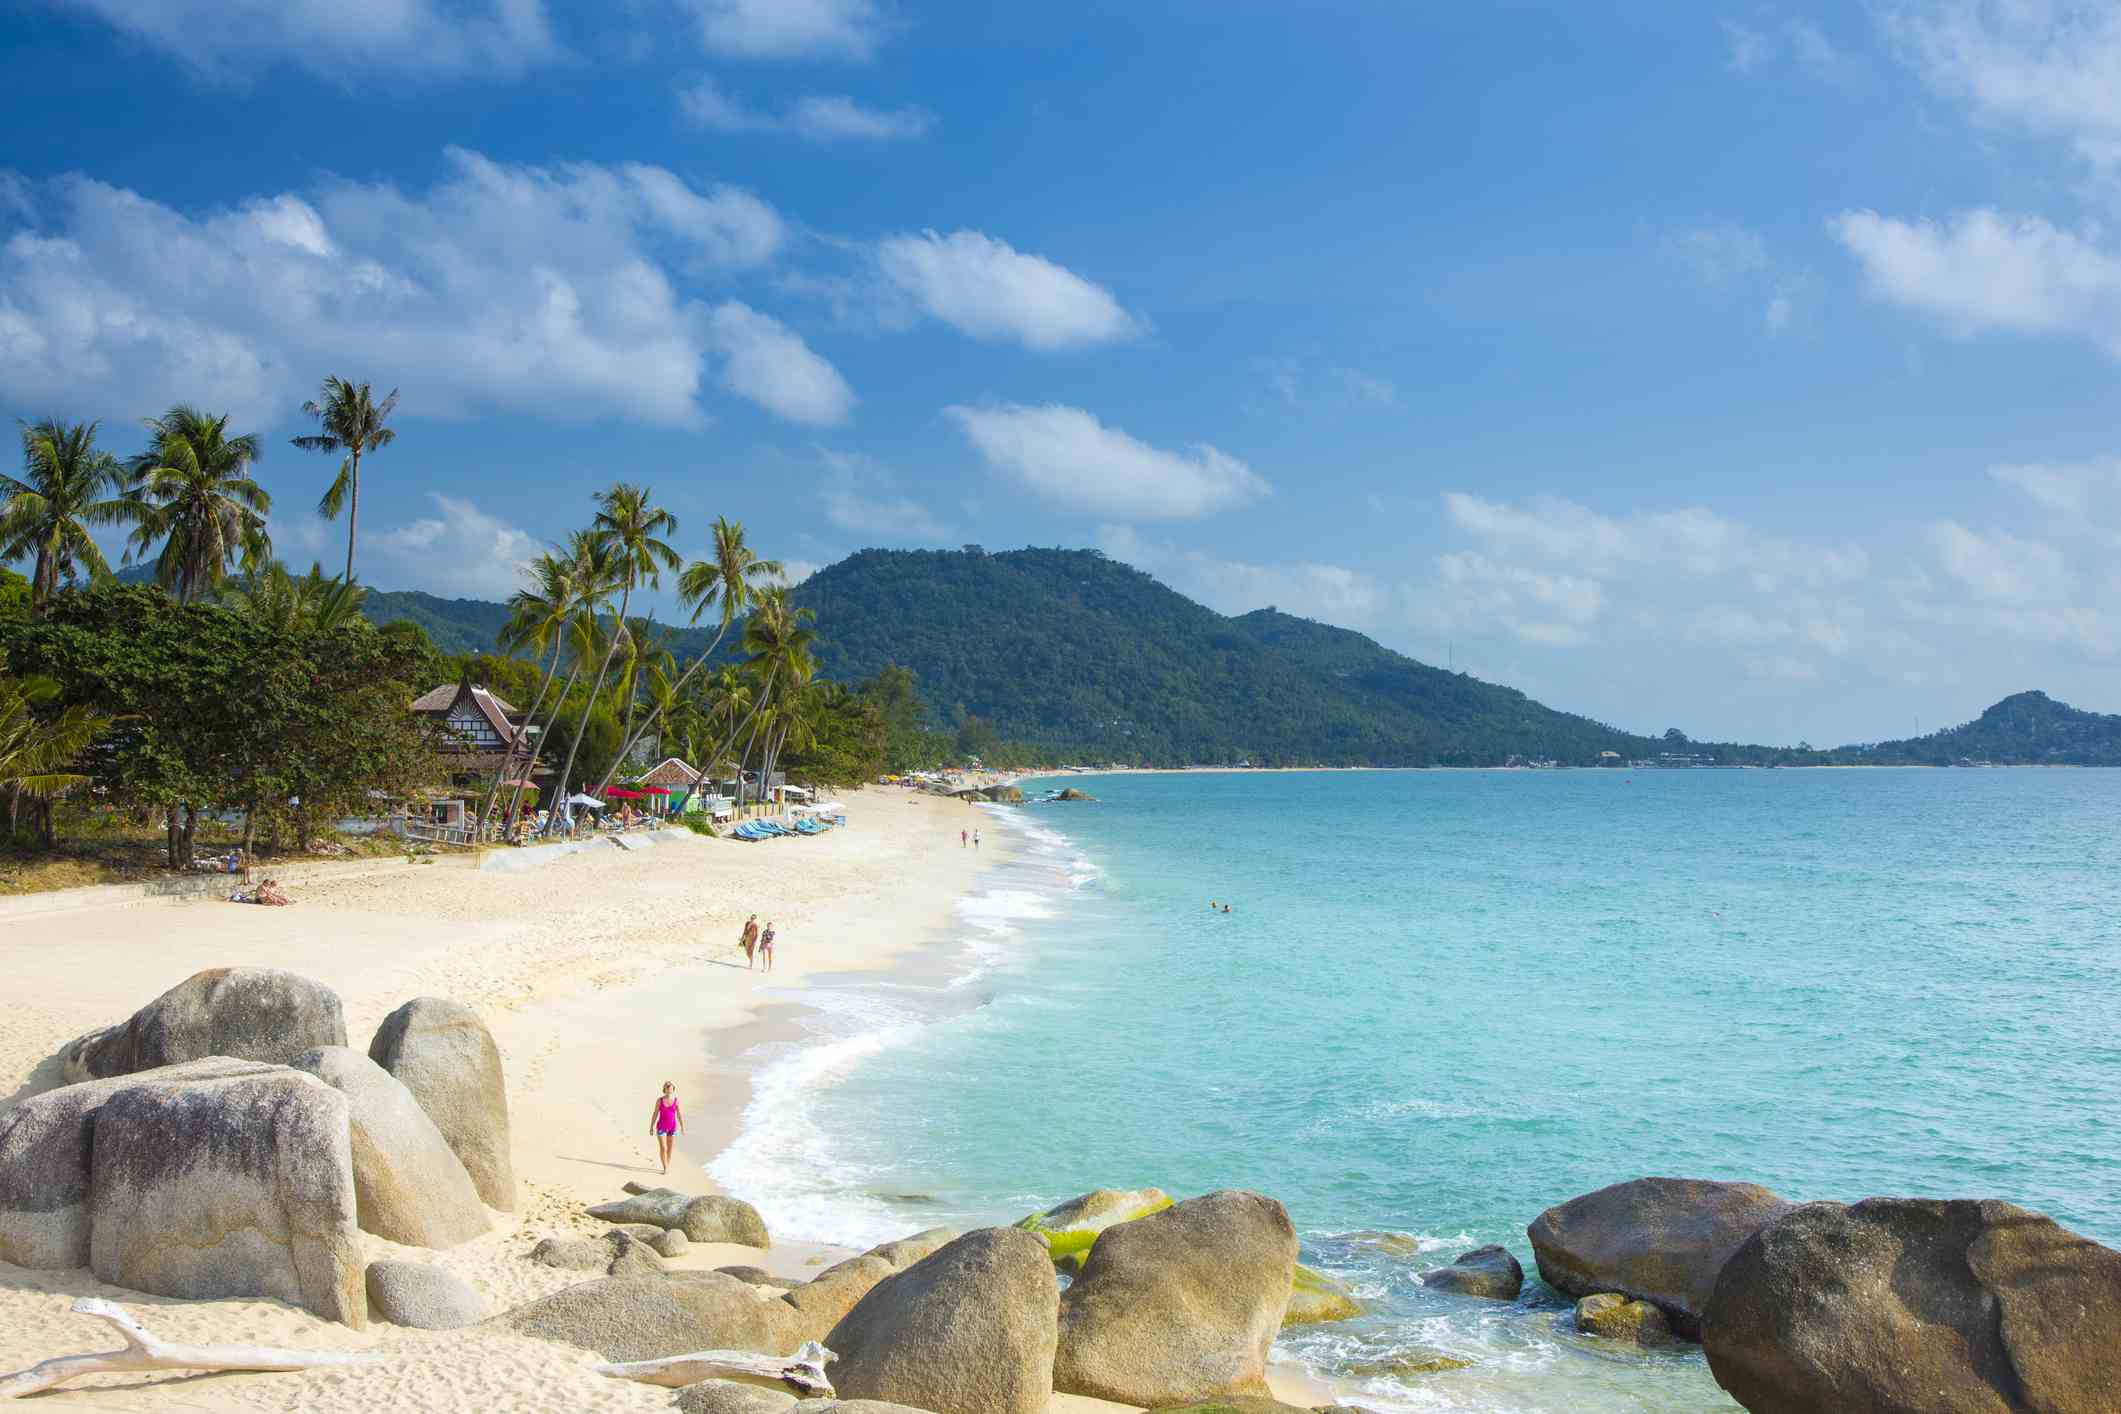 Sand Rocks And Palm Trees On Lamai Beach Koh Samui Thailand